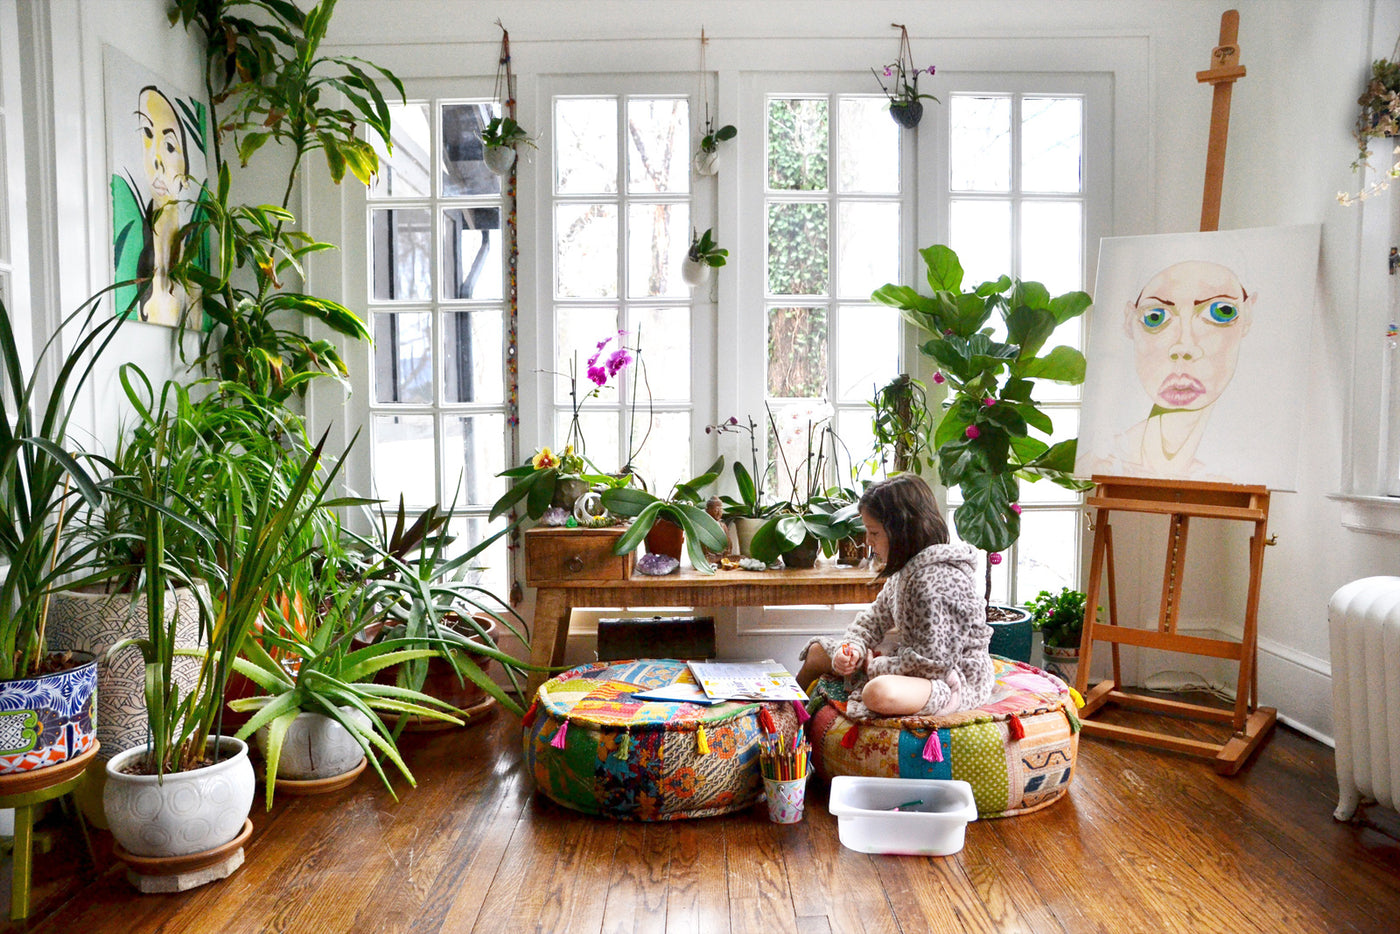 Three ways houseplants help keep you healthy.